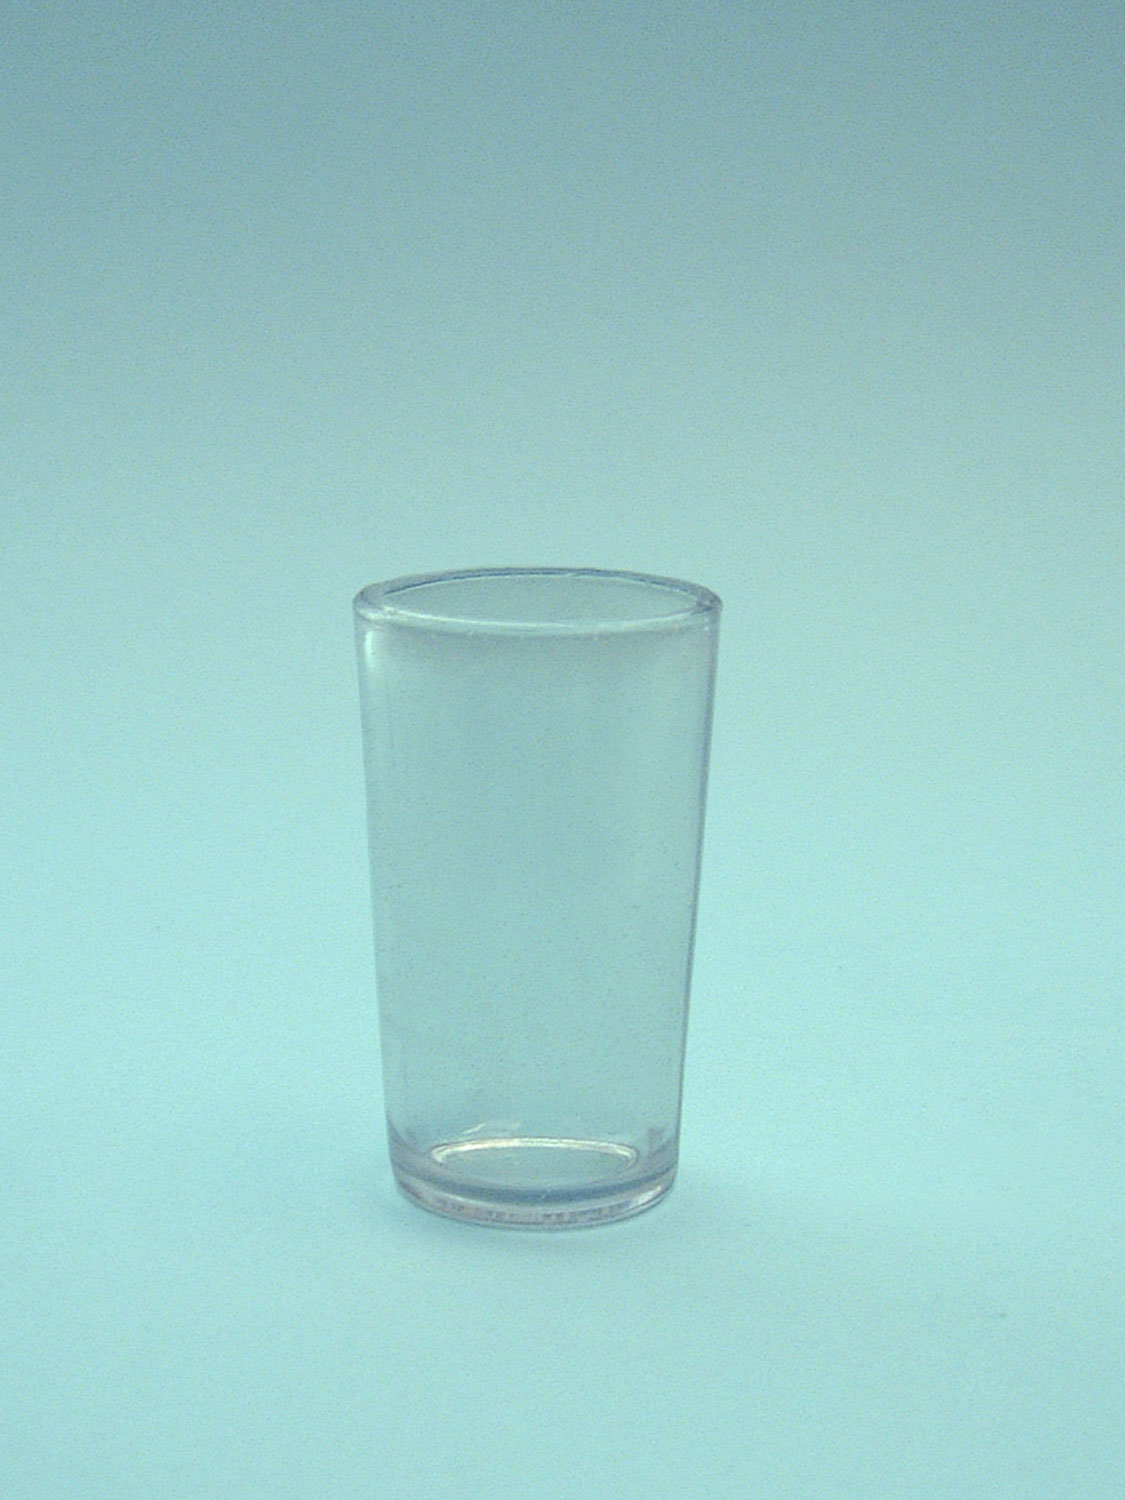 Breakaway sugar glass schnapps glass or gin glass shot-sugar glass 7.7 x 4.8 cm.